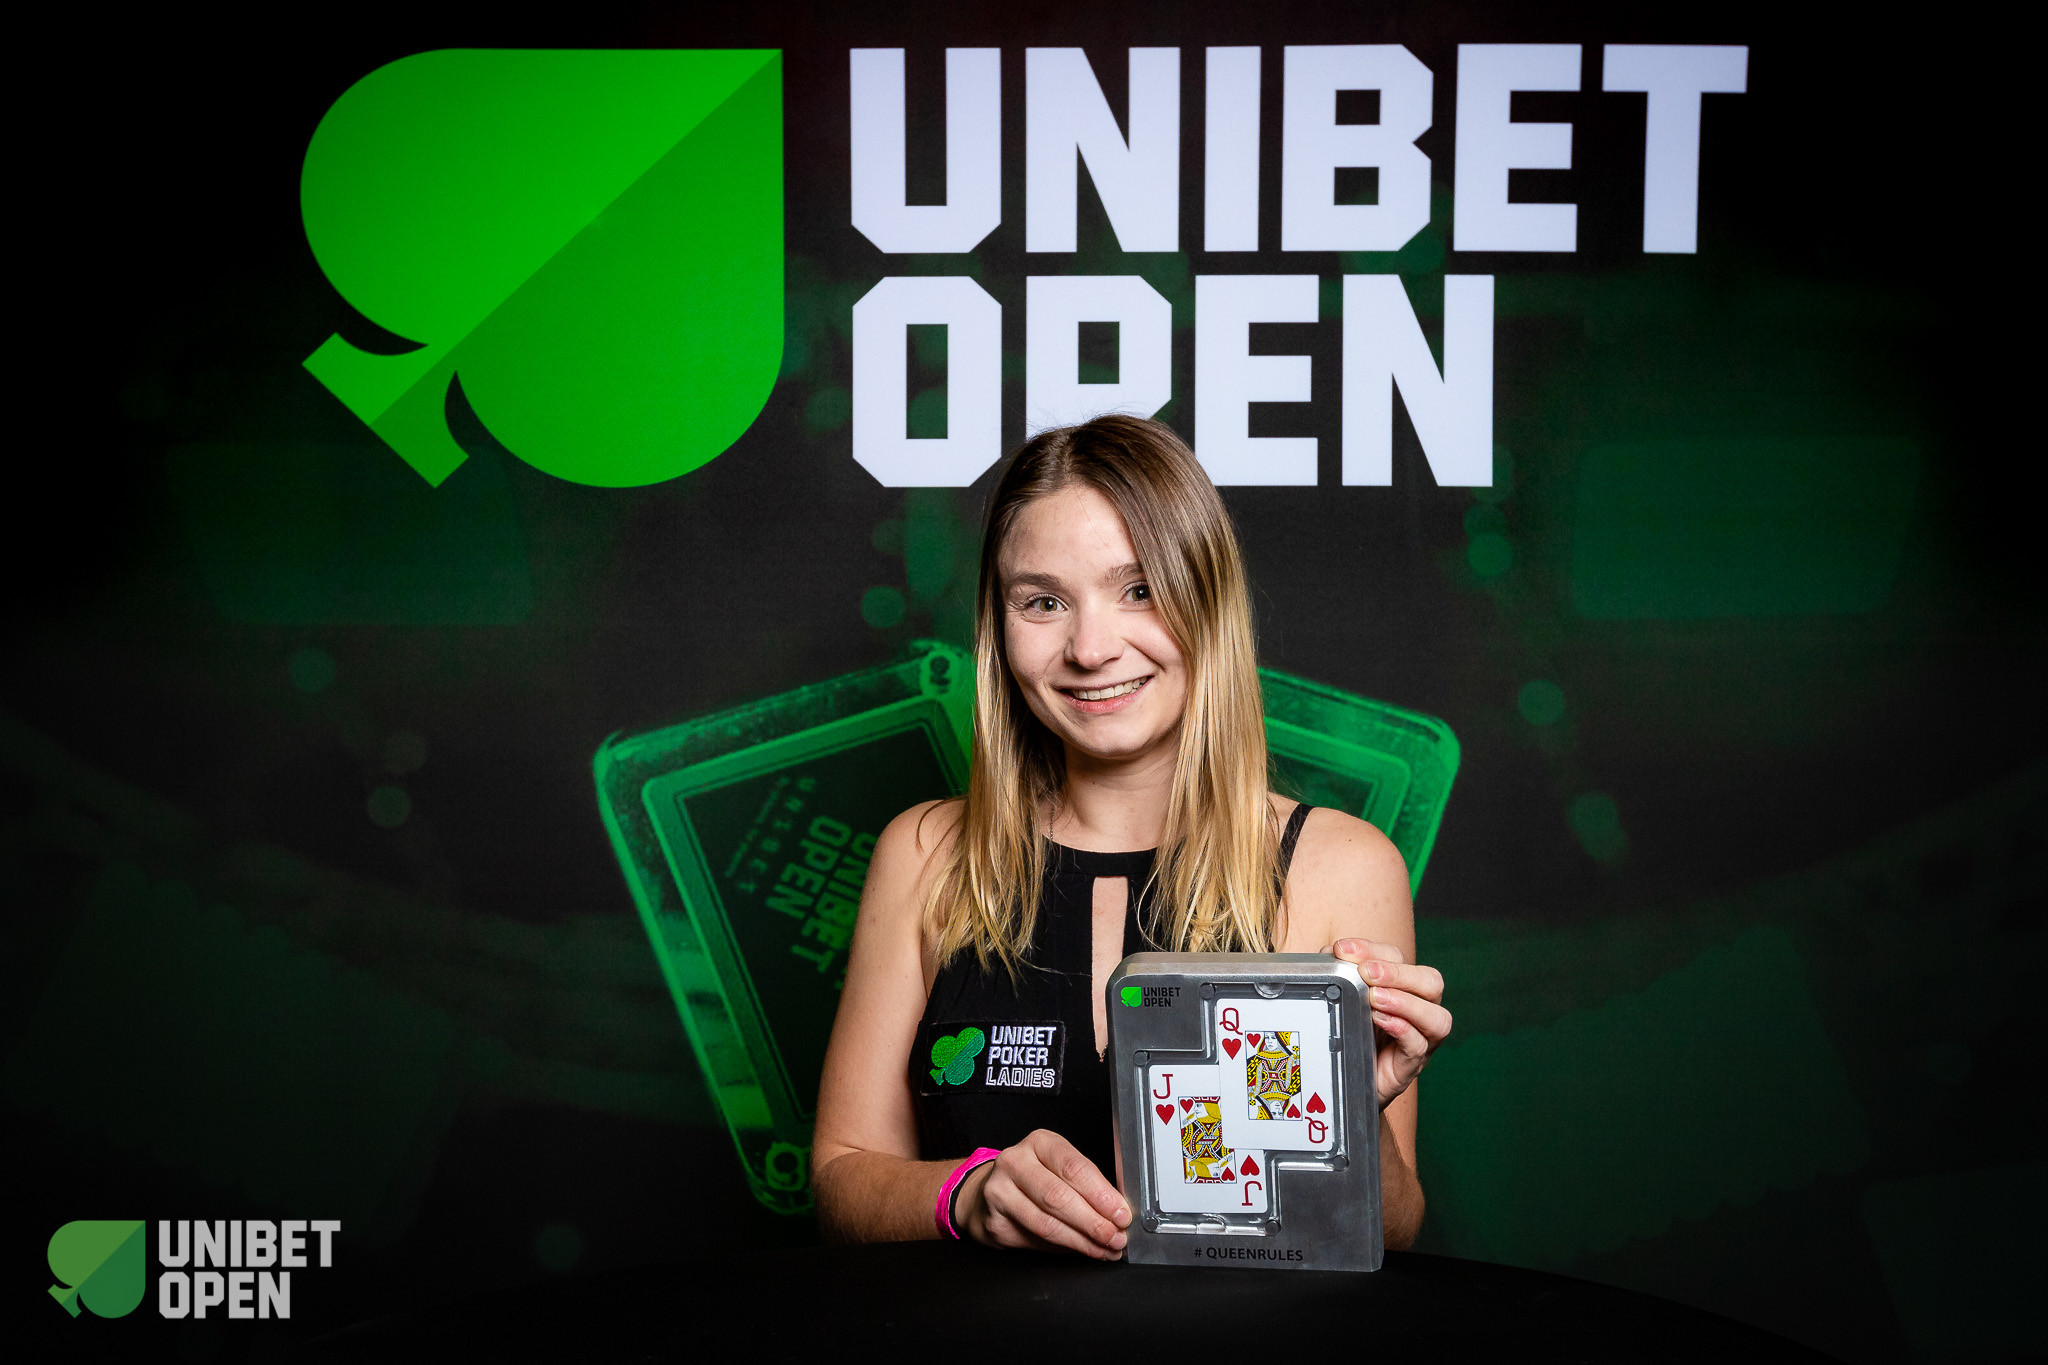 Queen Rules champion Emelie Svenningsson